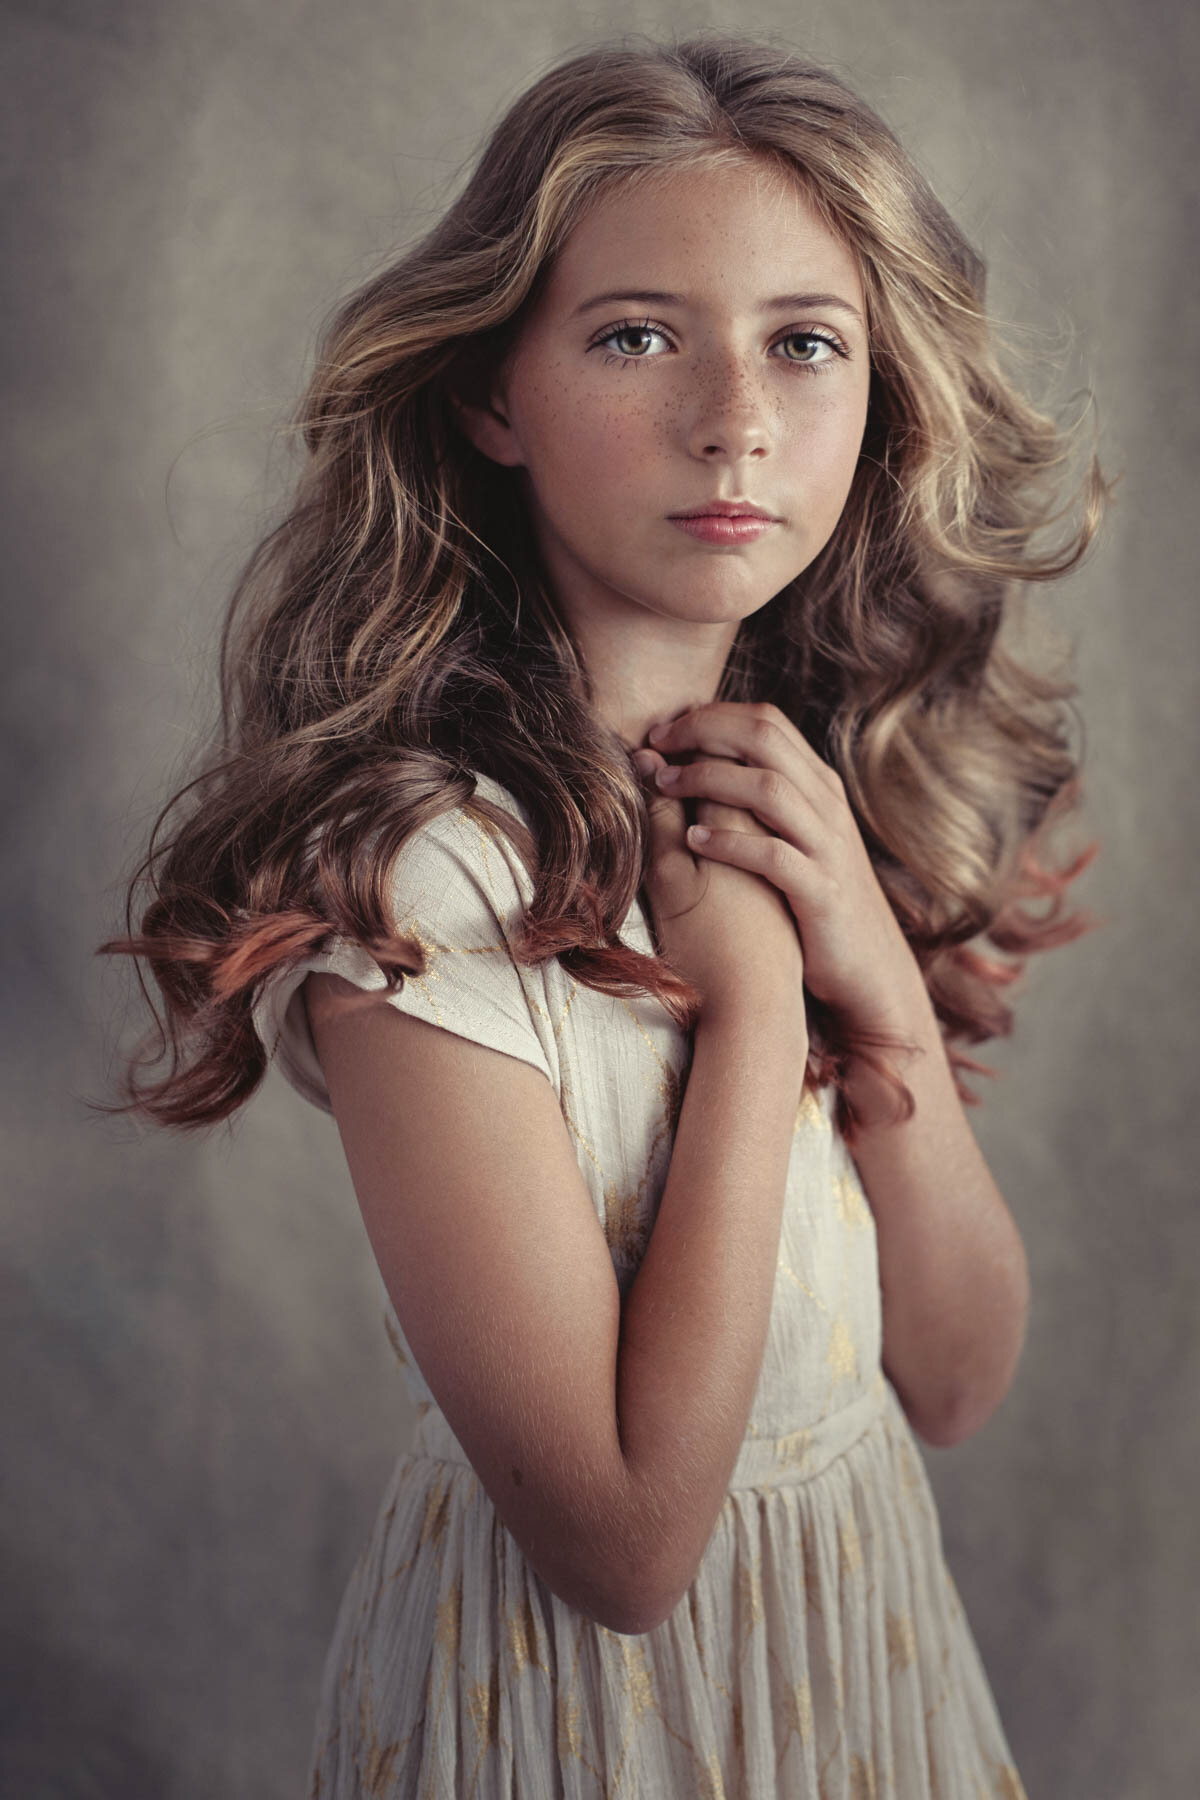 Asheville family photographer - empowering girls - building confidence